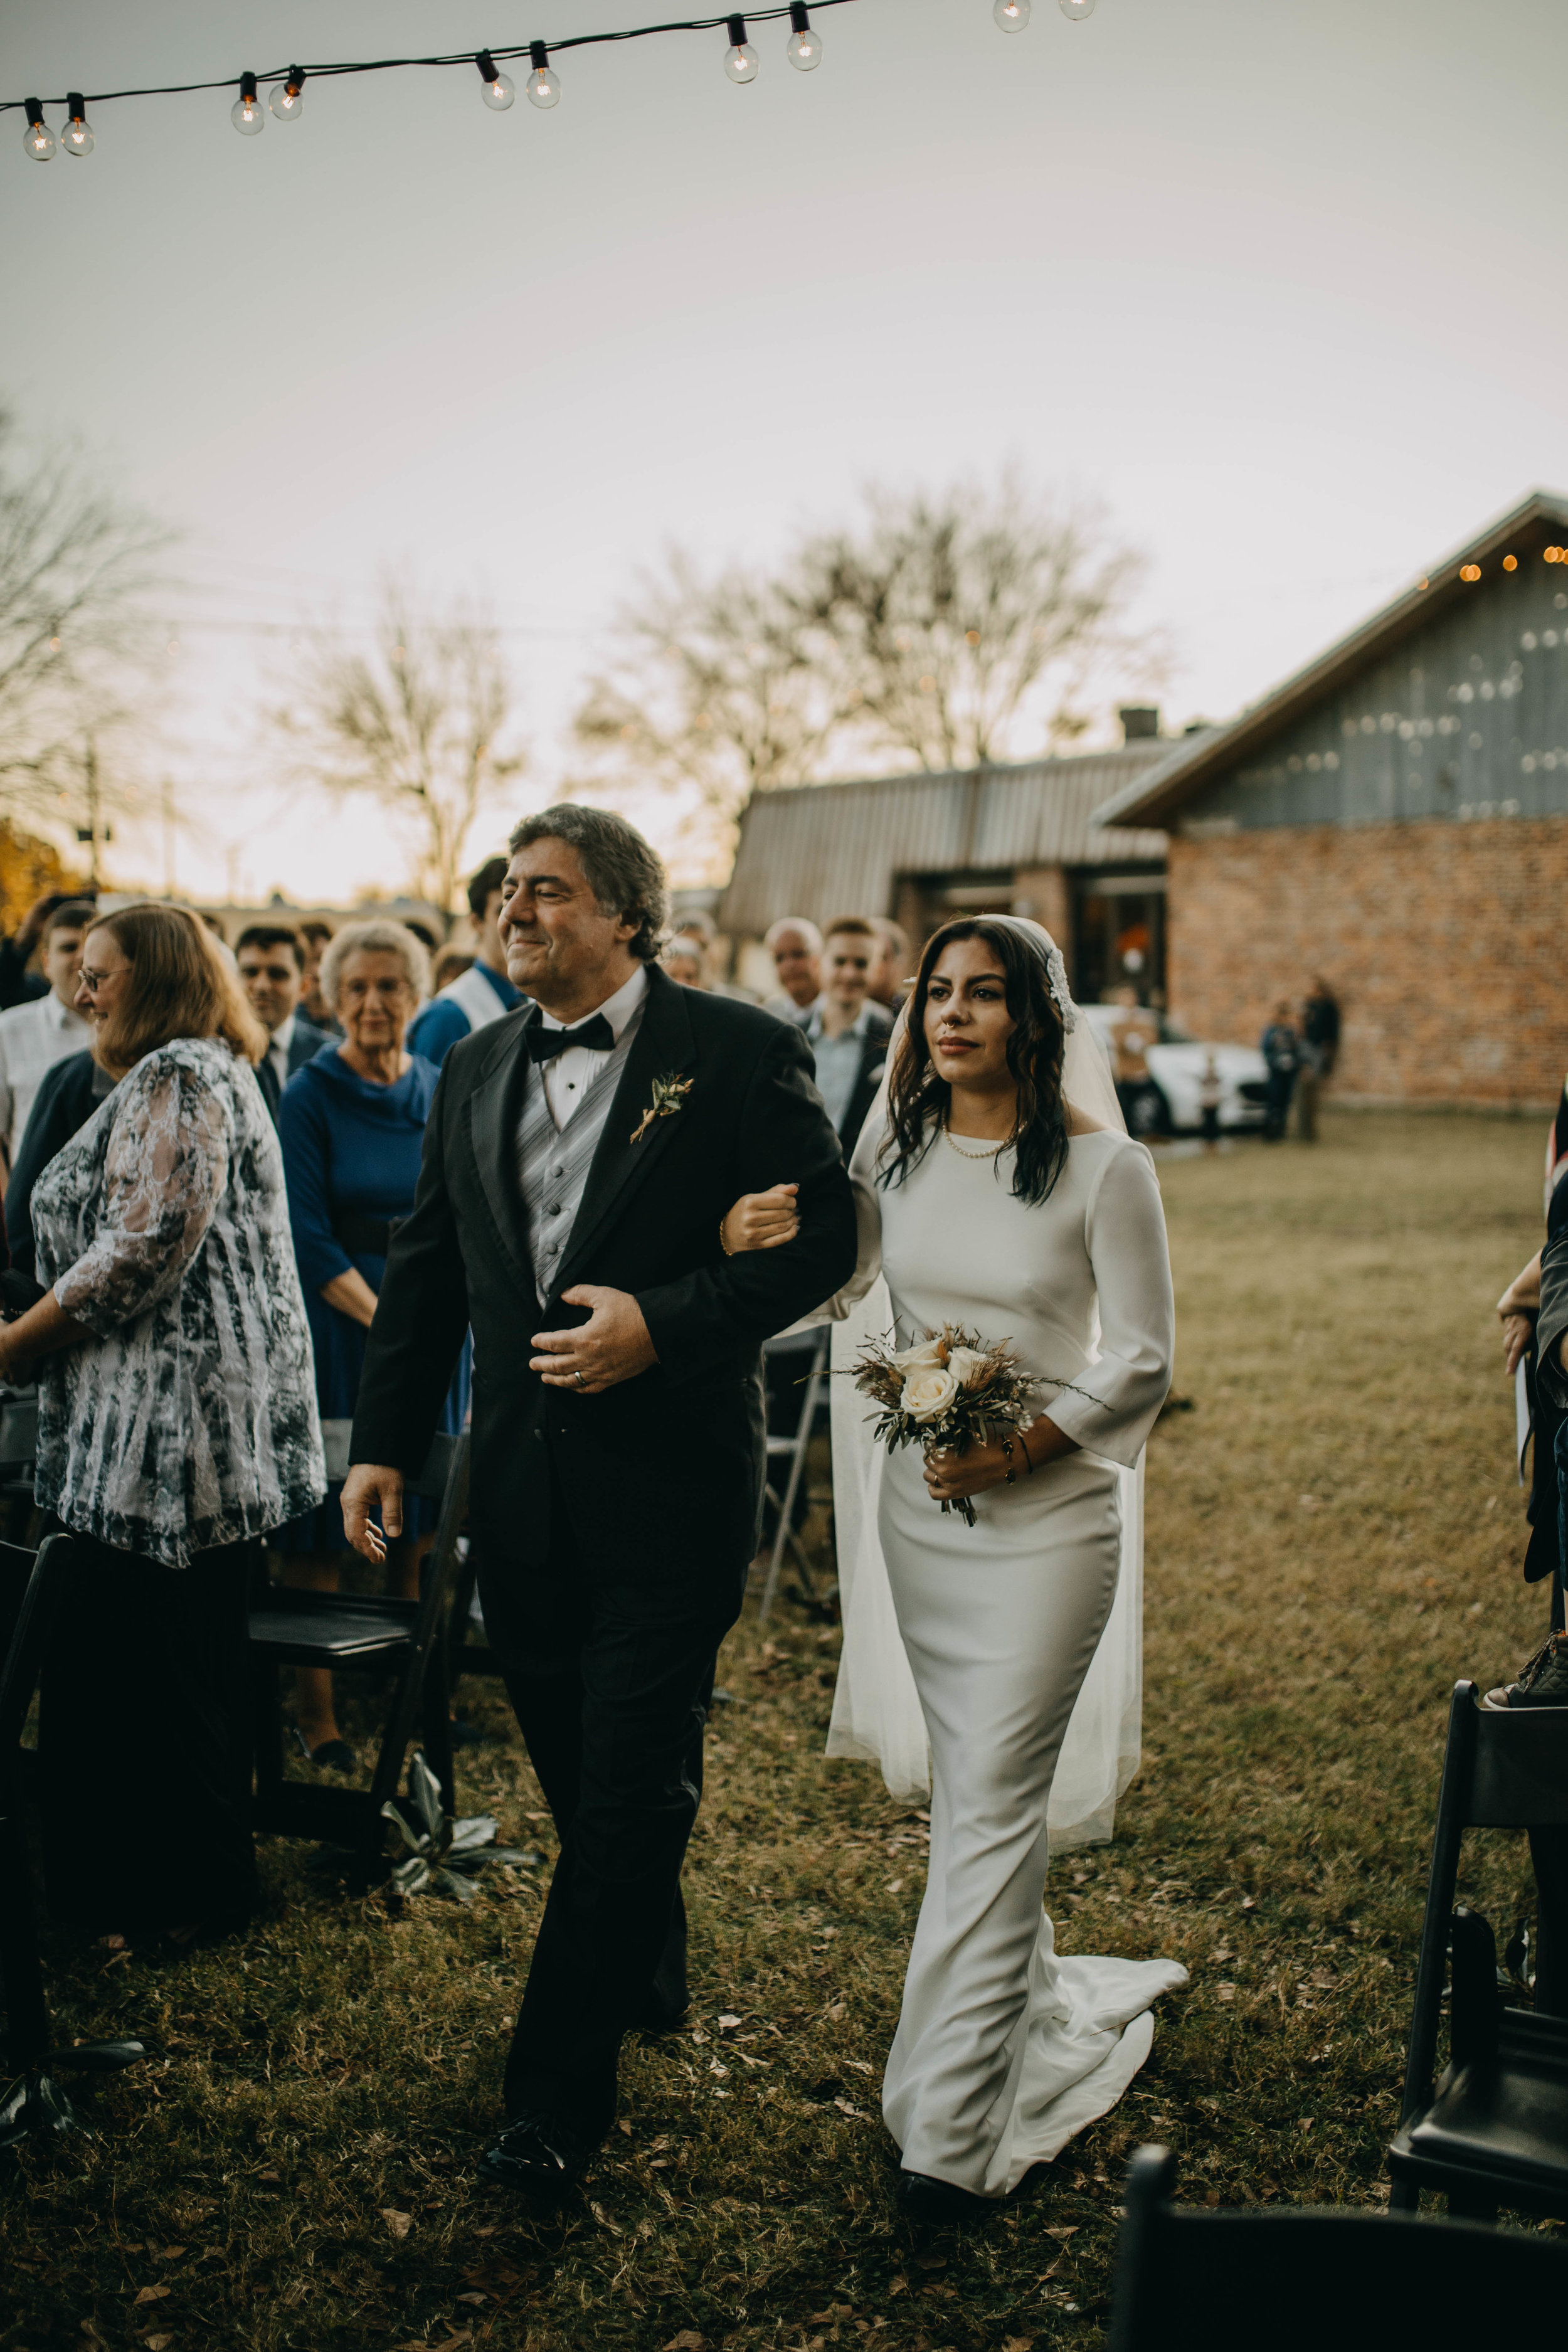 Walking down the aisle | American Traditional Tattoo Themed Eco Friendly Dark Florida Wedding